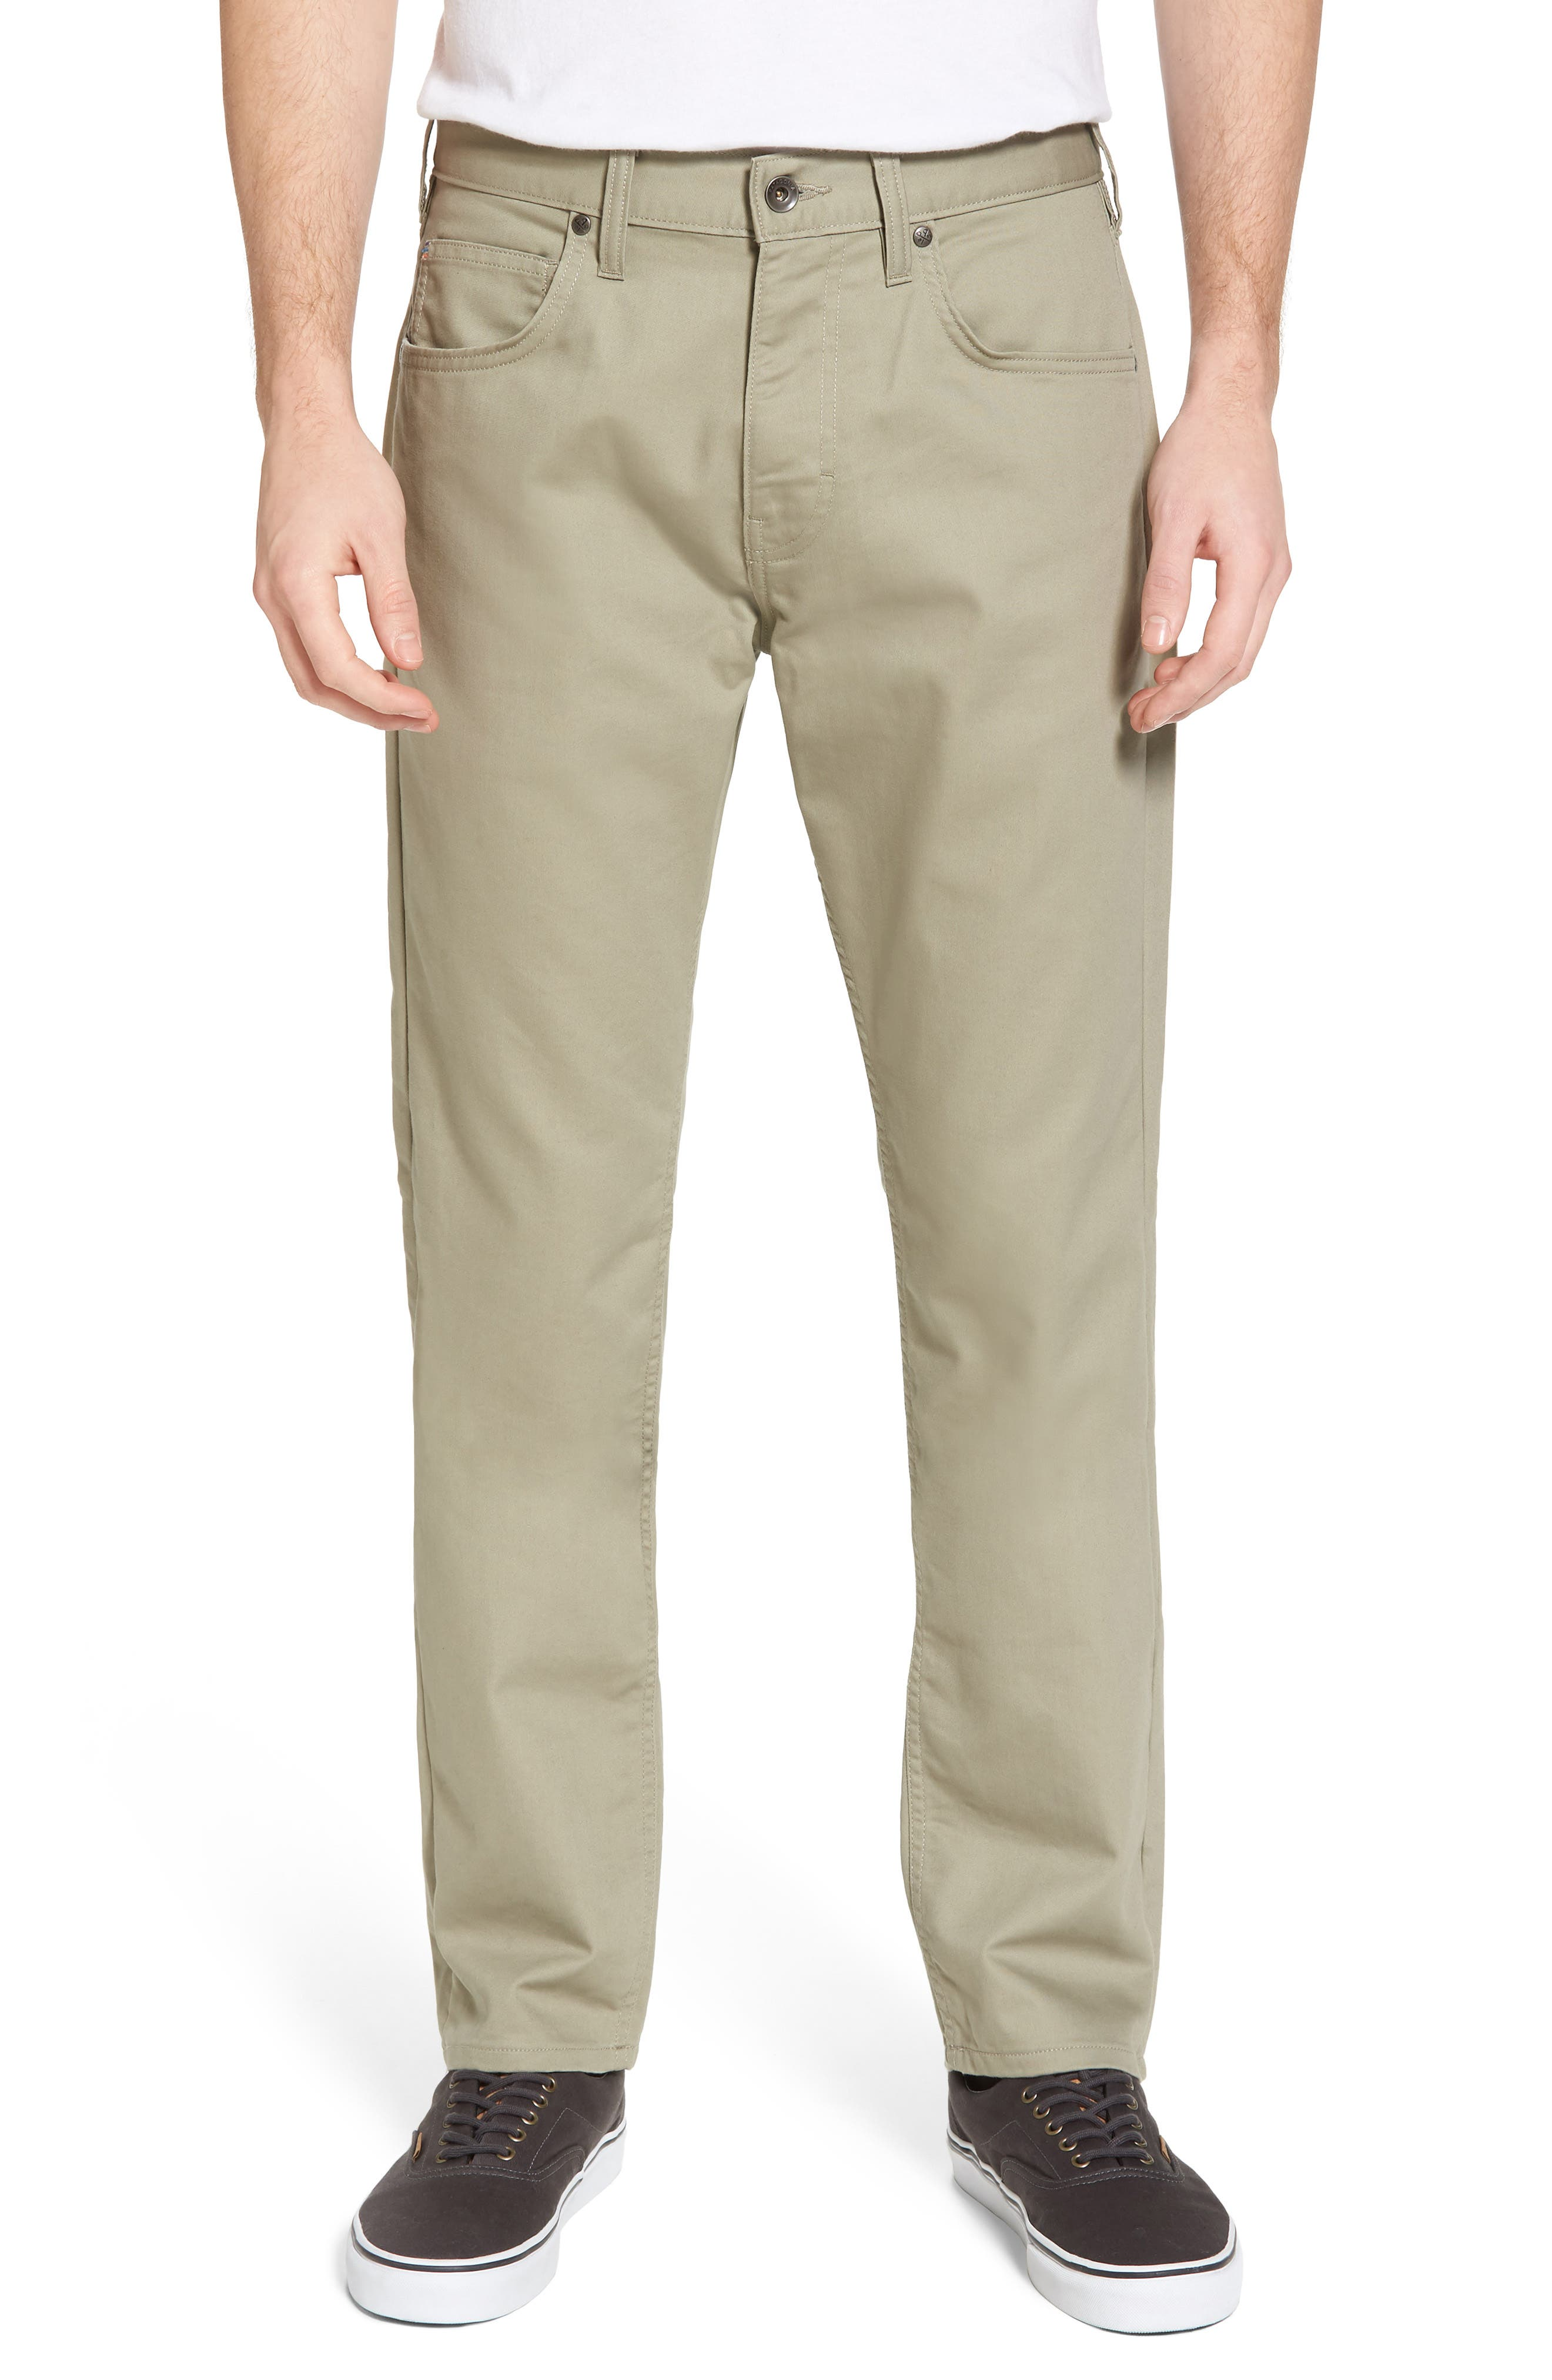 M's Performance Twill Jeans,                         Main,                         color, Shale